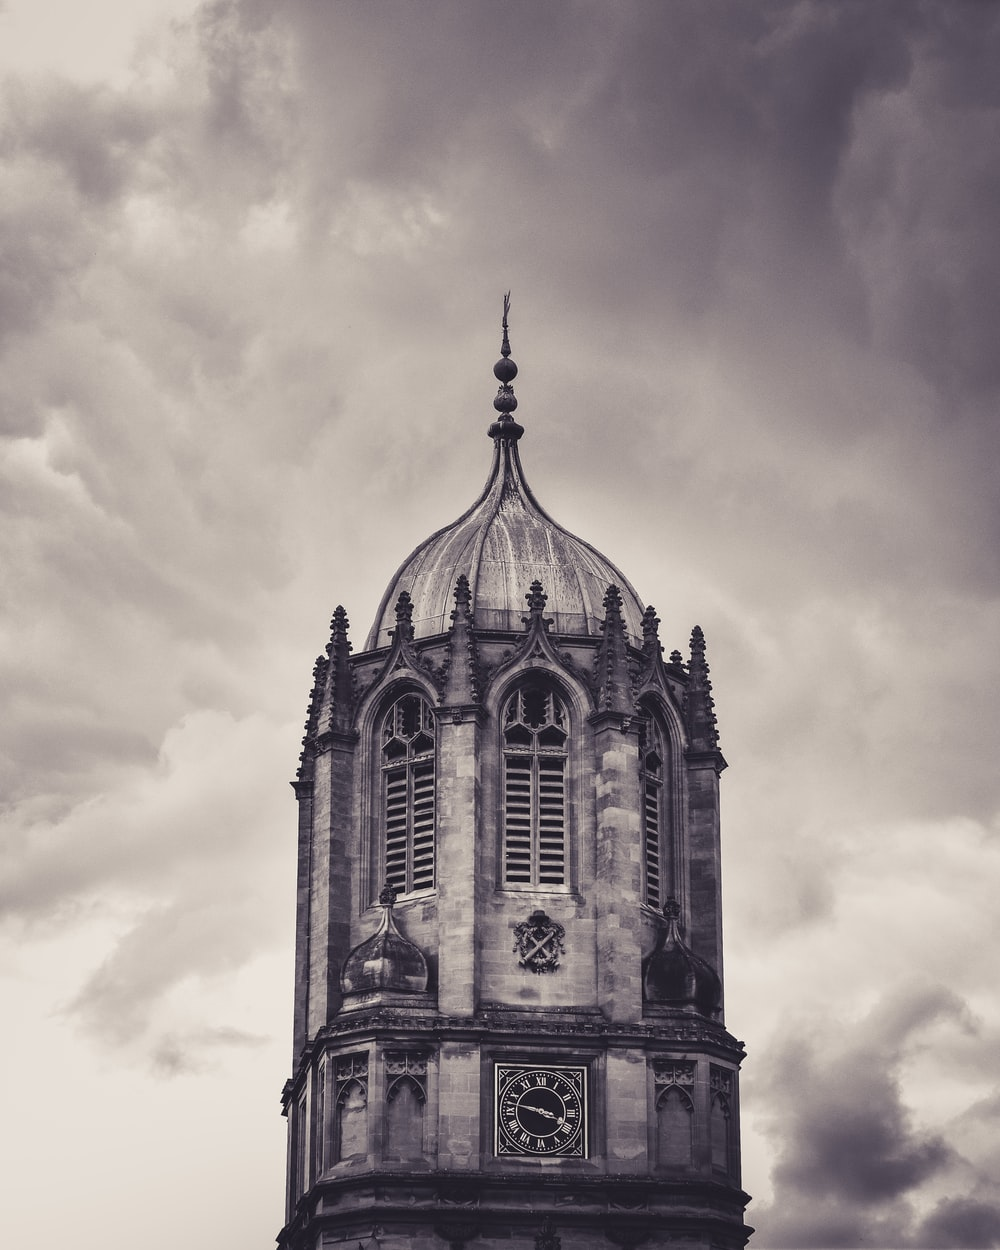 grayscale photography of dome building